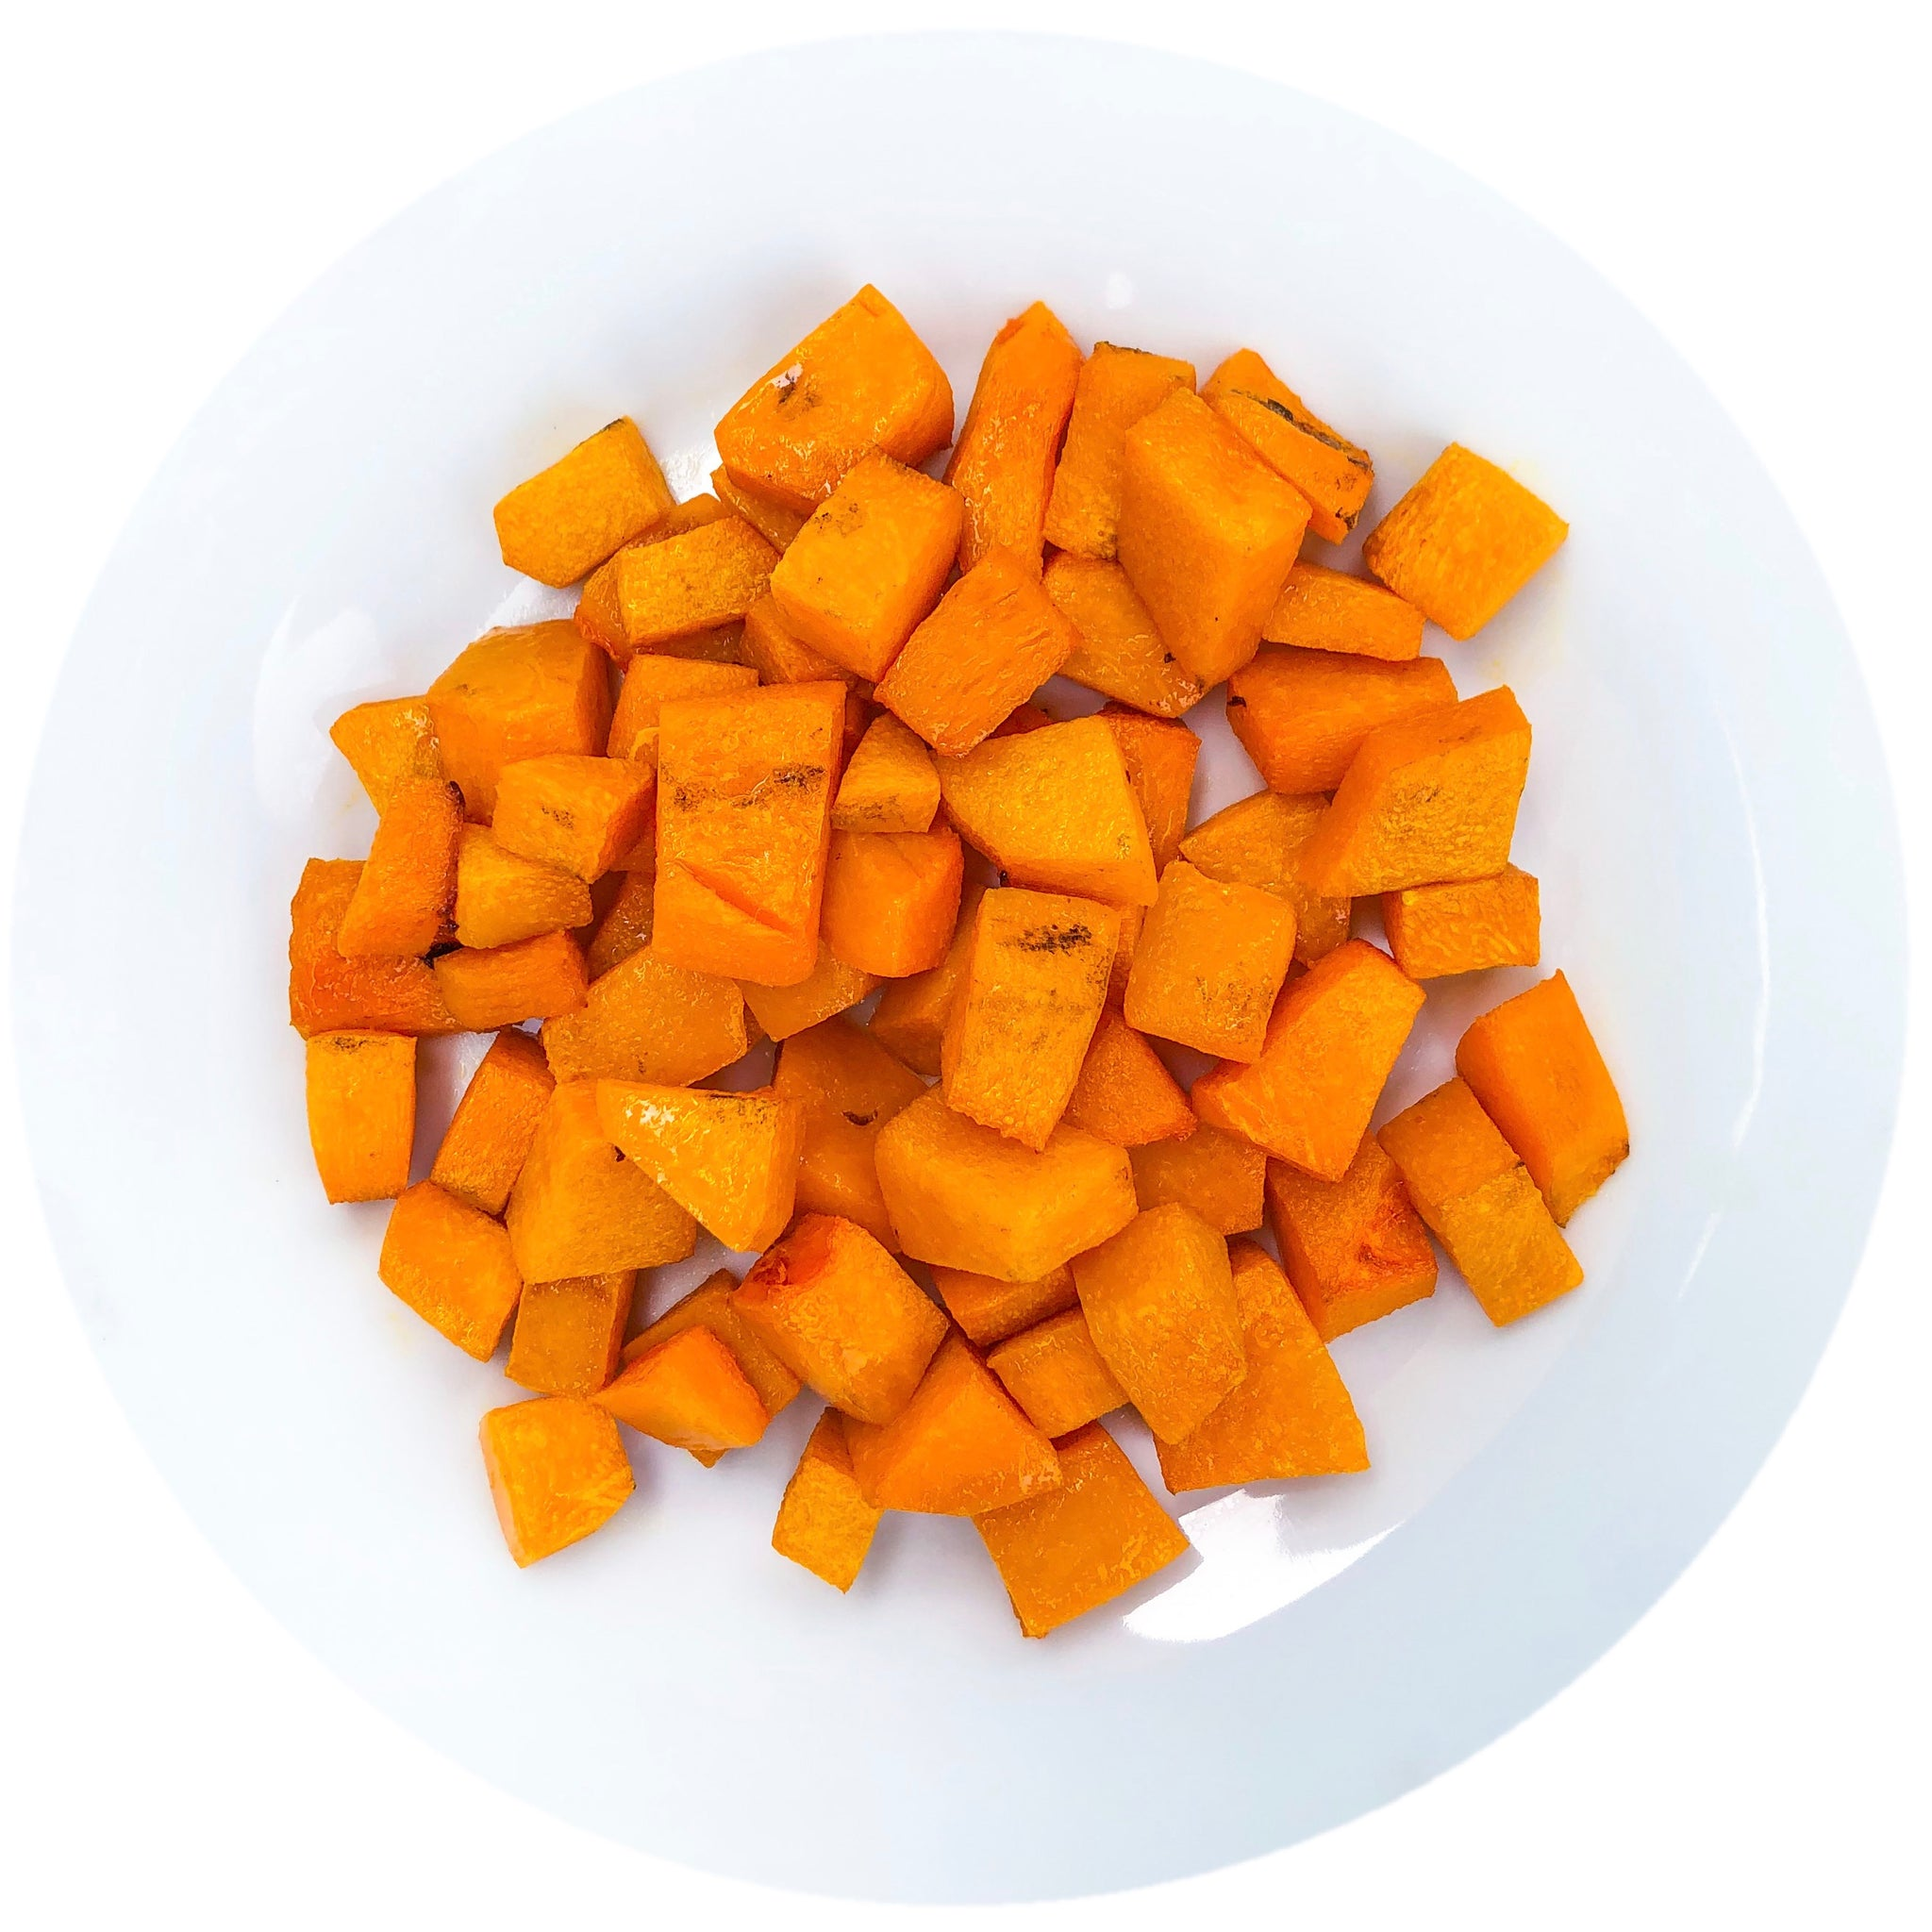 ROASTED BUTTERNUT SQUASH (1 POUND)